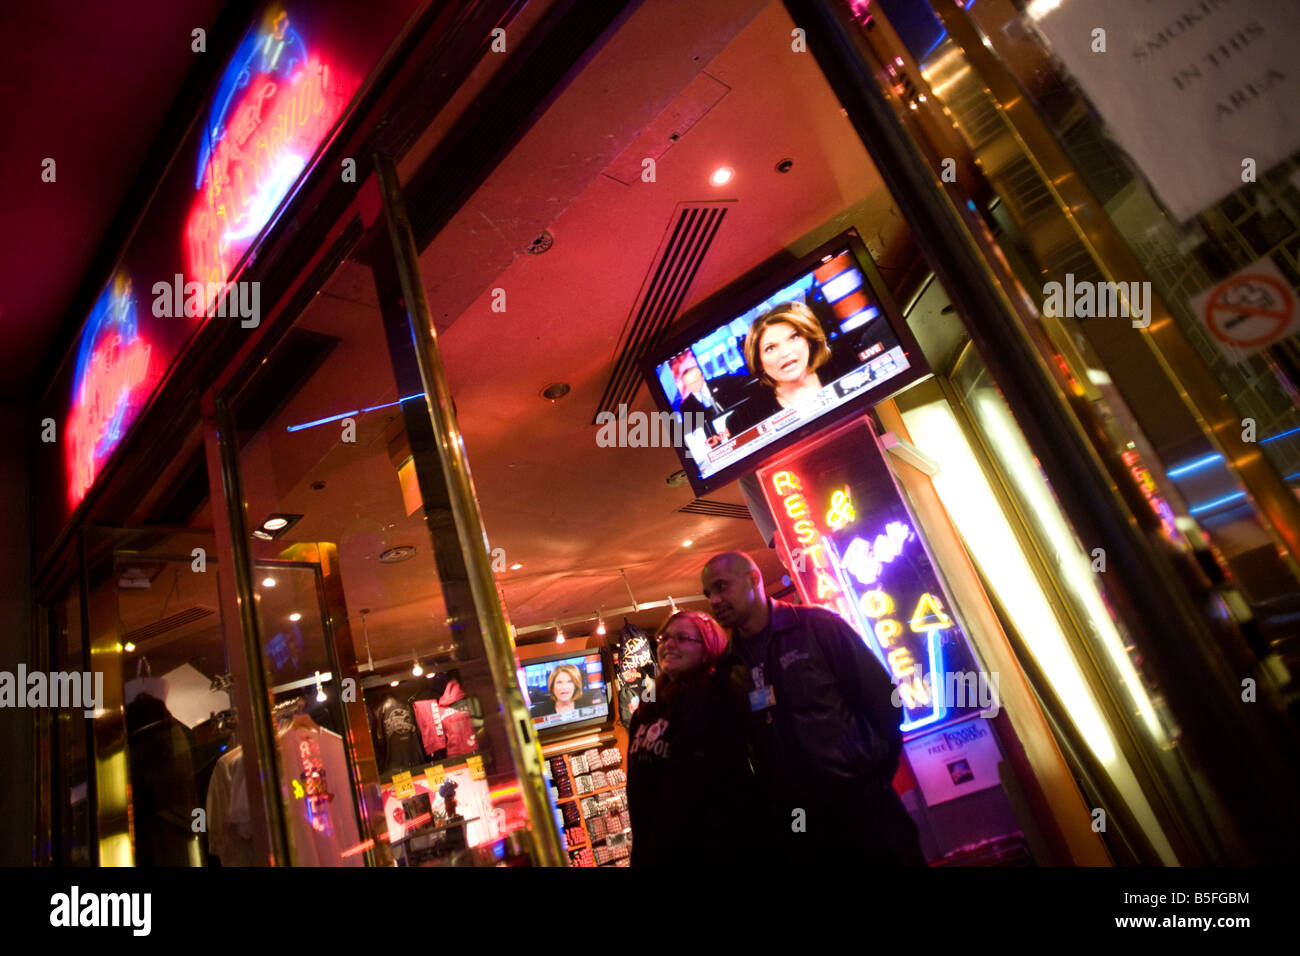 Live TV broadcasts from the US shows overnight results of the 2008 presidential elections that Barack Obama eventually - Stock Image